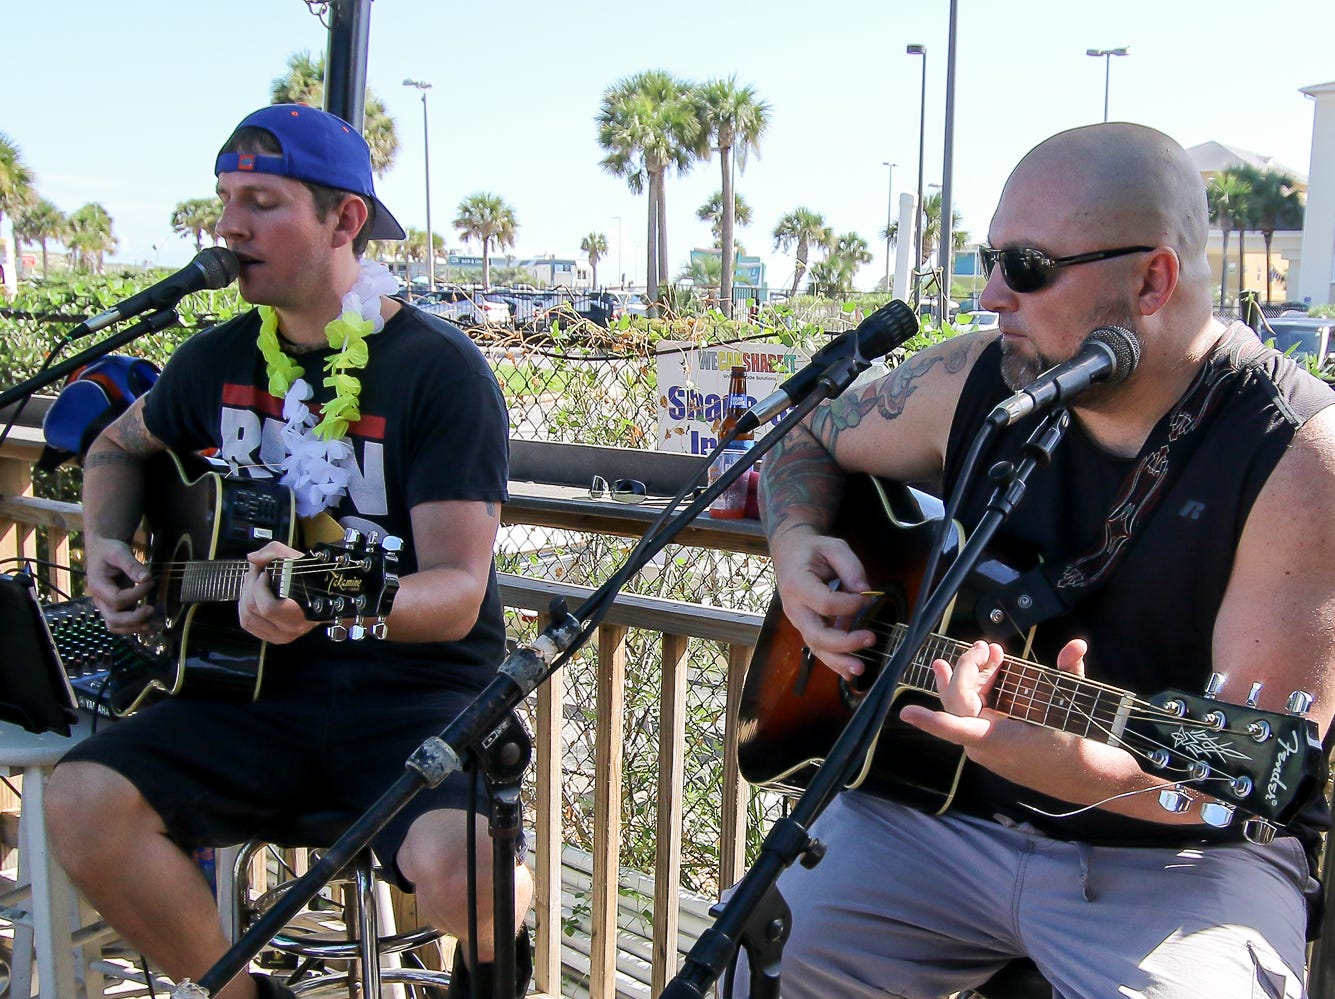 Schofield Duo performs during the Bushwacker Festival at the Sandshaker Lounge on Pensacola Beach on Saturday, August 4, 2018.